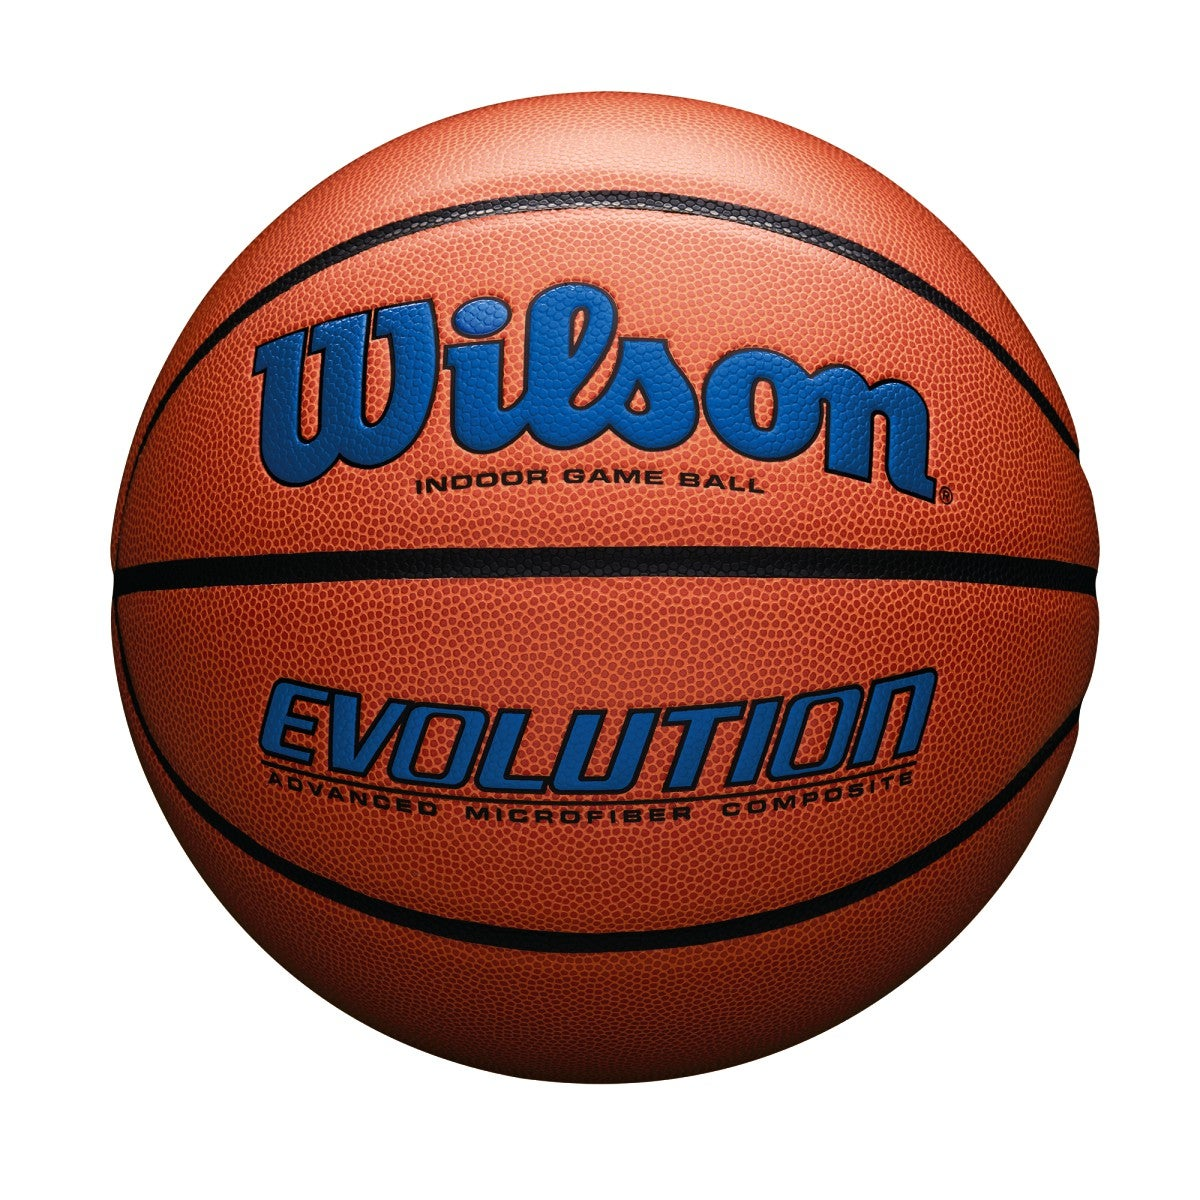 Evolution Game Ball - Royal